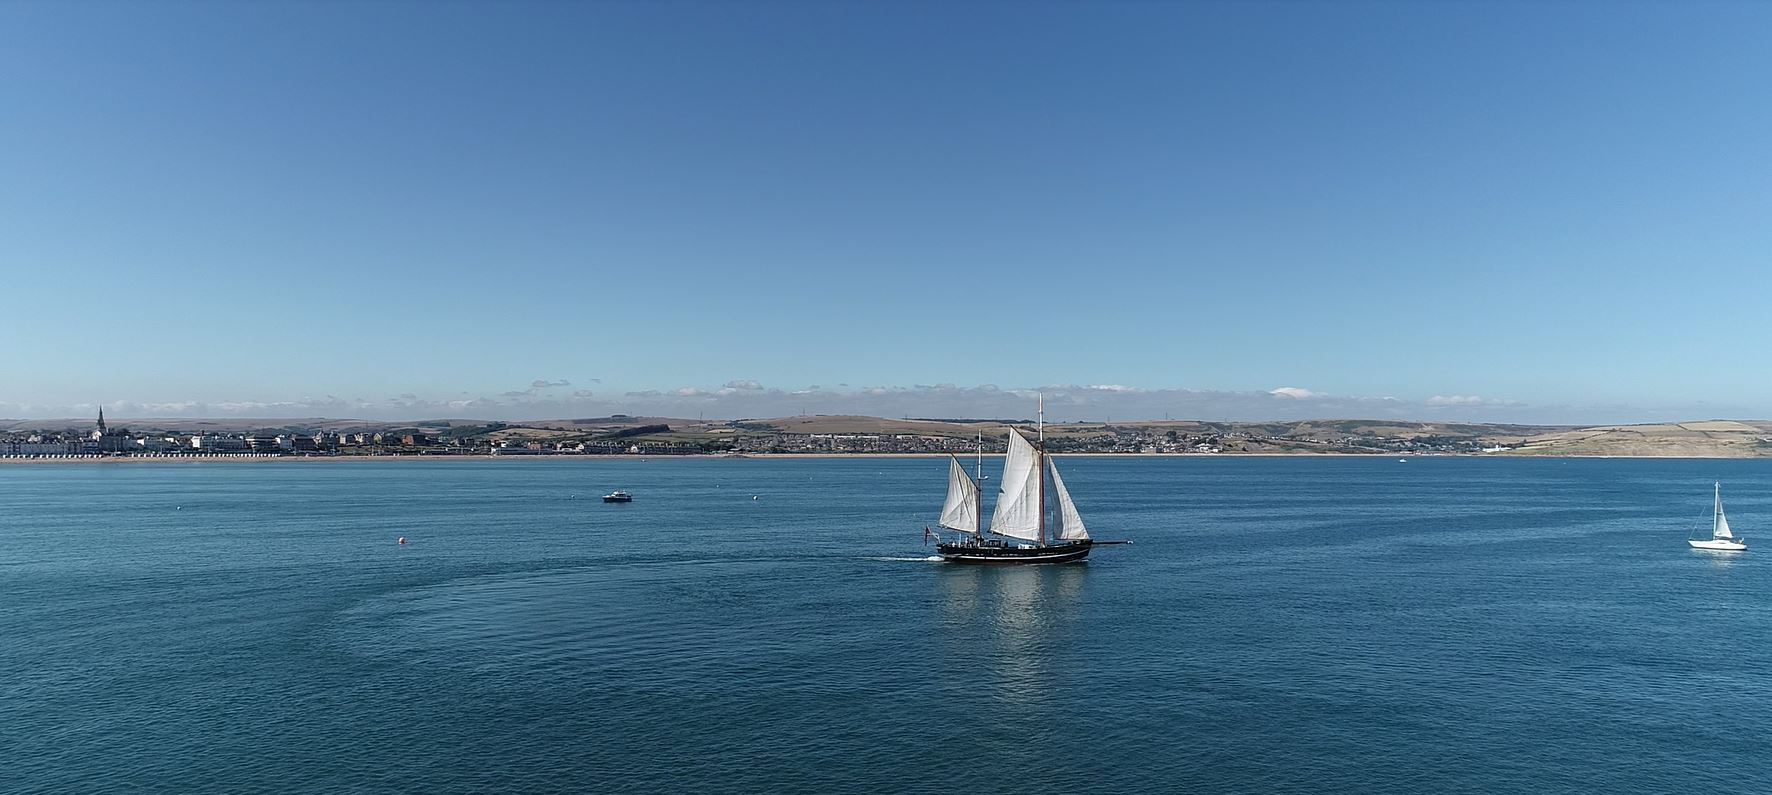 Moonfleet Sailing in Weymouth taken by L